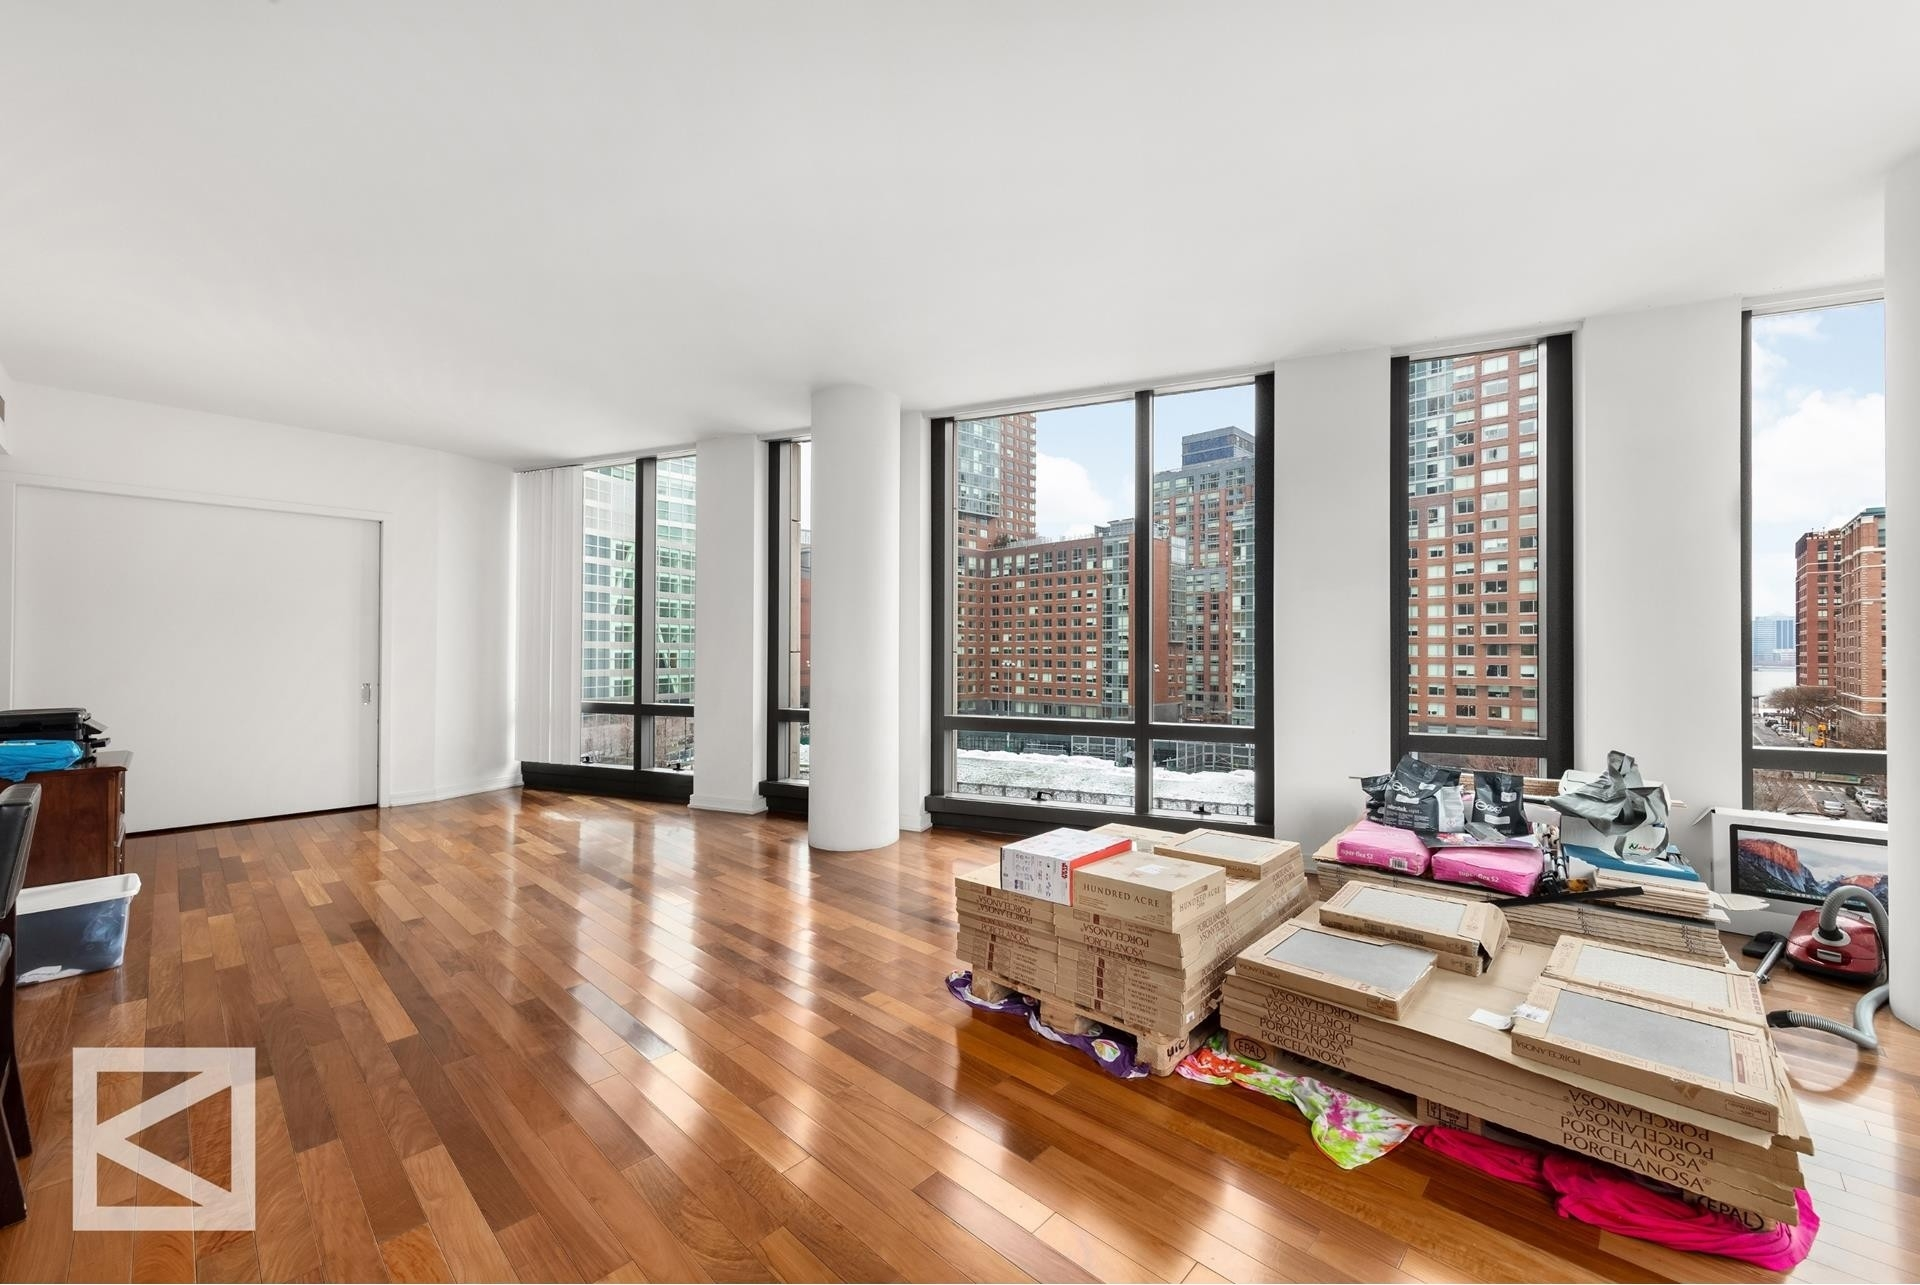 Property en 101 WARREN ST , 610/620 TriBeCa, New York, NY 10007